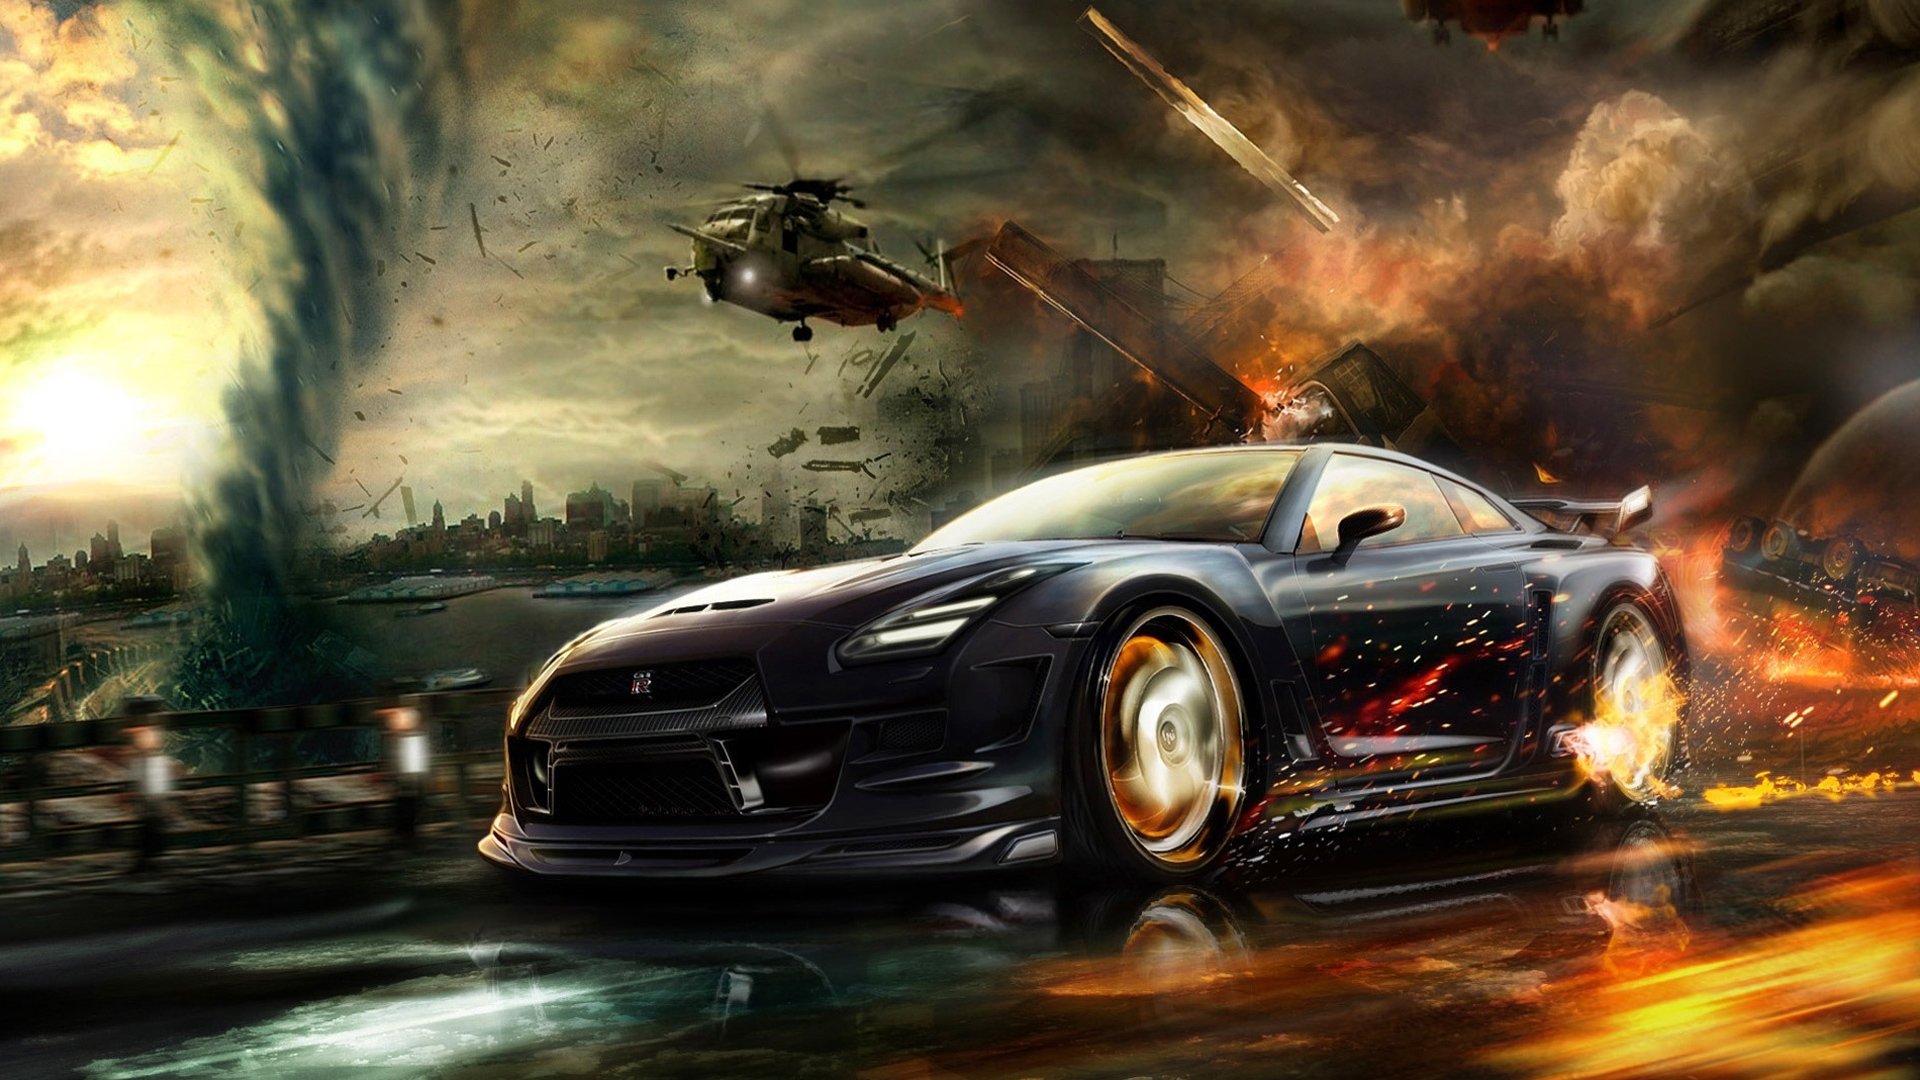 click to free download the wallpaper--Pics of Cars - Nisaan GTR Race Post in Pixel of 1920x1080, Cool Car Escaping from an Explosion, Great Speed 1920X1080 free wallpaper download